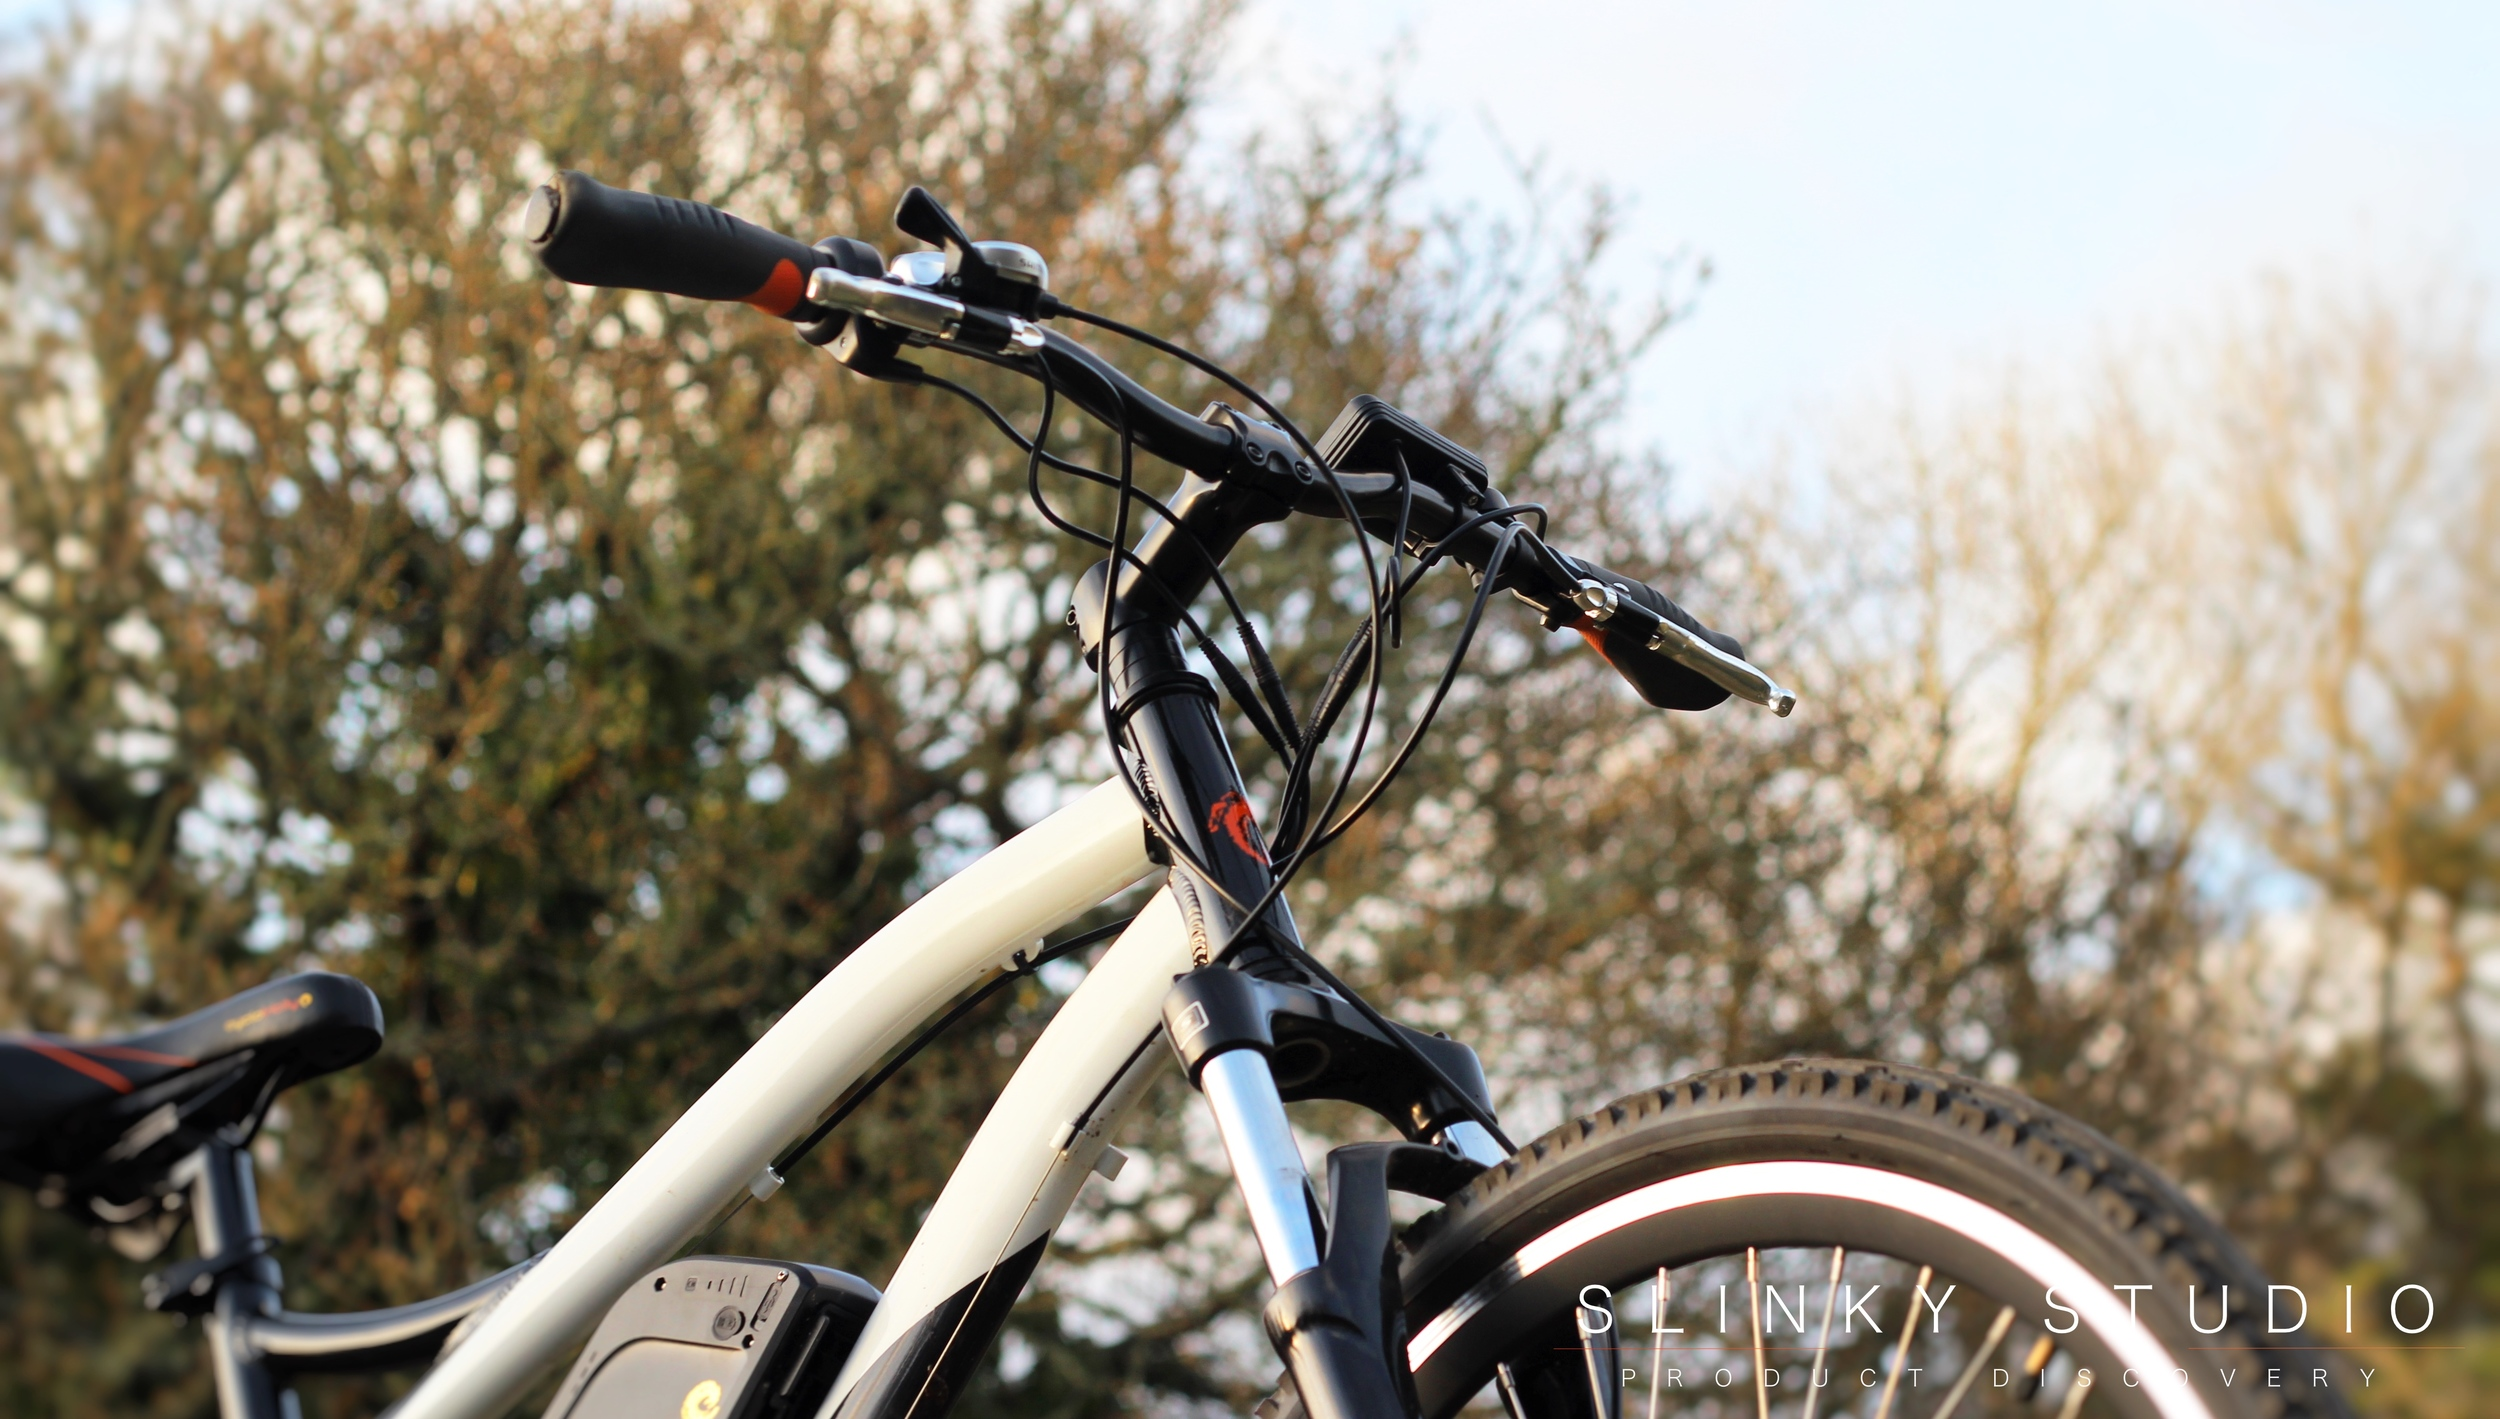 Cyclotricity Stealth eBike Front View Looking Upwards Through Tree Branches.jpg